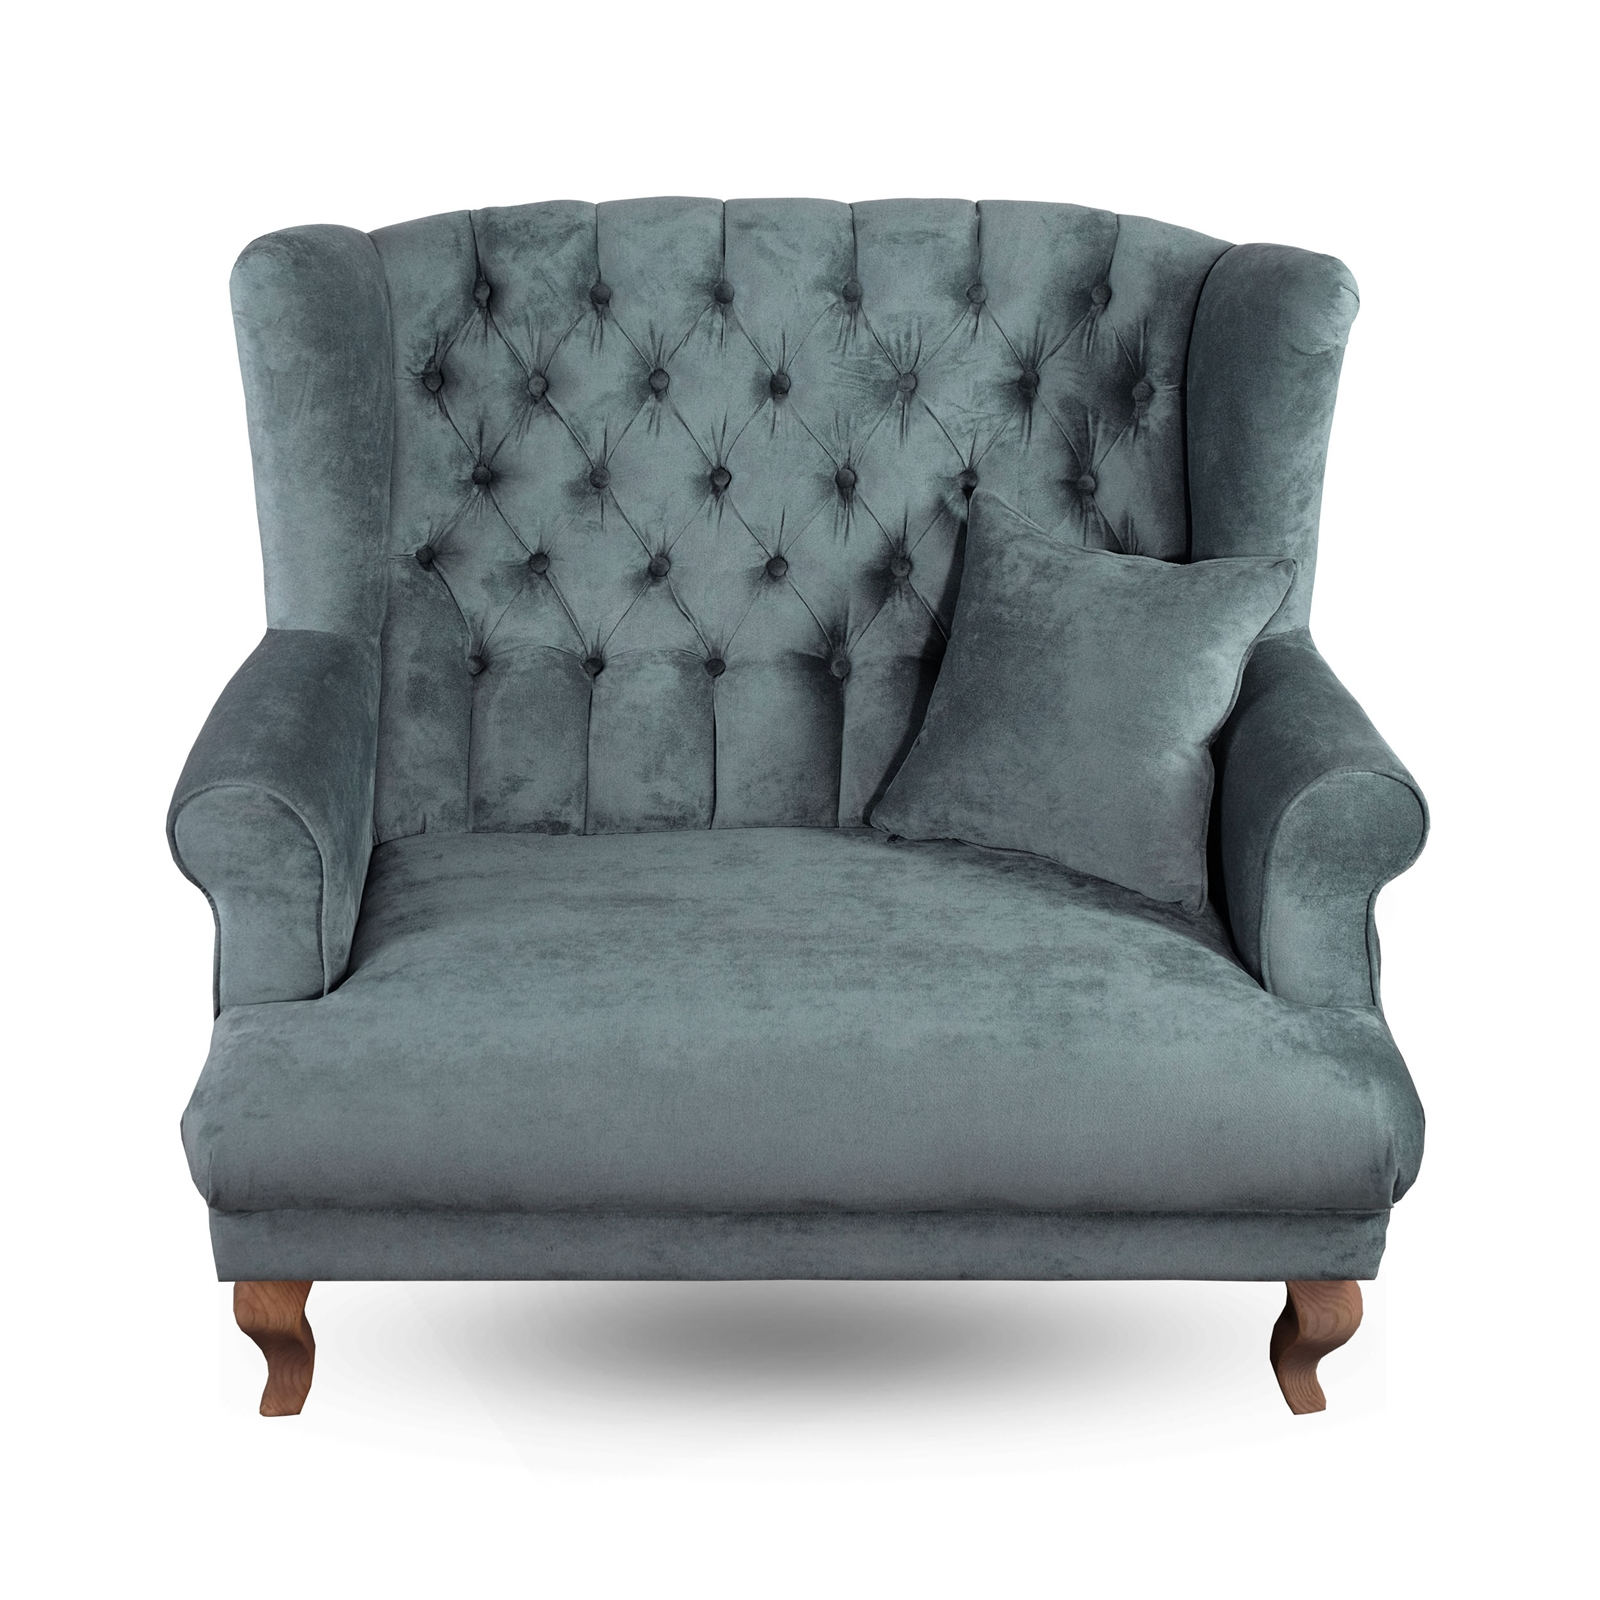 Design Sofa Stockholm 48 Velvet Upholstered Turquoise Living Room Chair Ebay